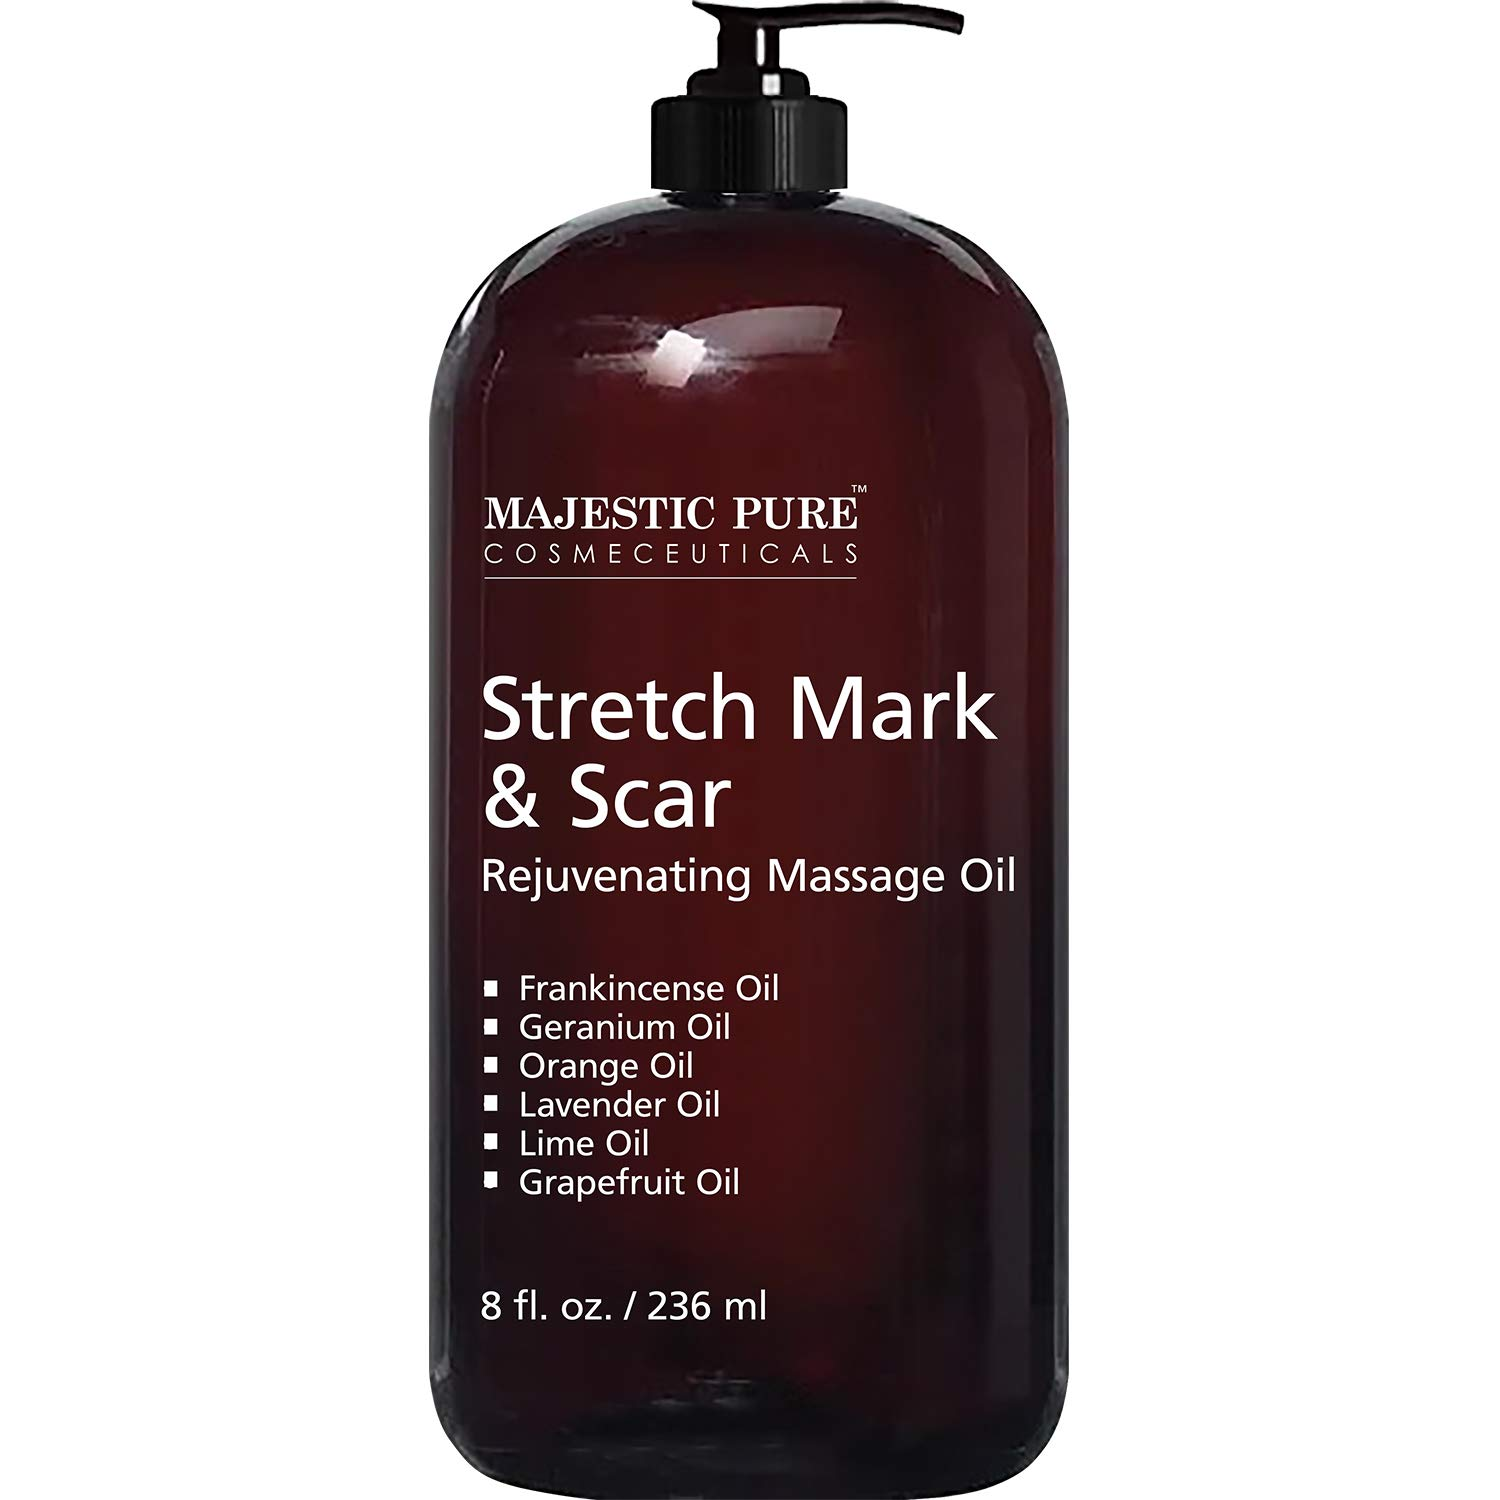 Majestic Pure Stretch Mark and Scar Rejuvenating Massage Oil, for Softer & Smoother Skin - Visibly Reduces Appearances of Scars and Stretch Marks - 8 fl oz